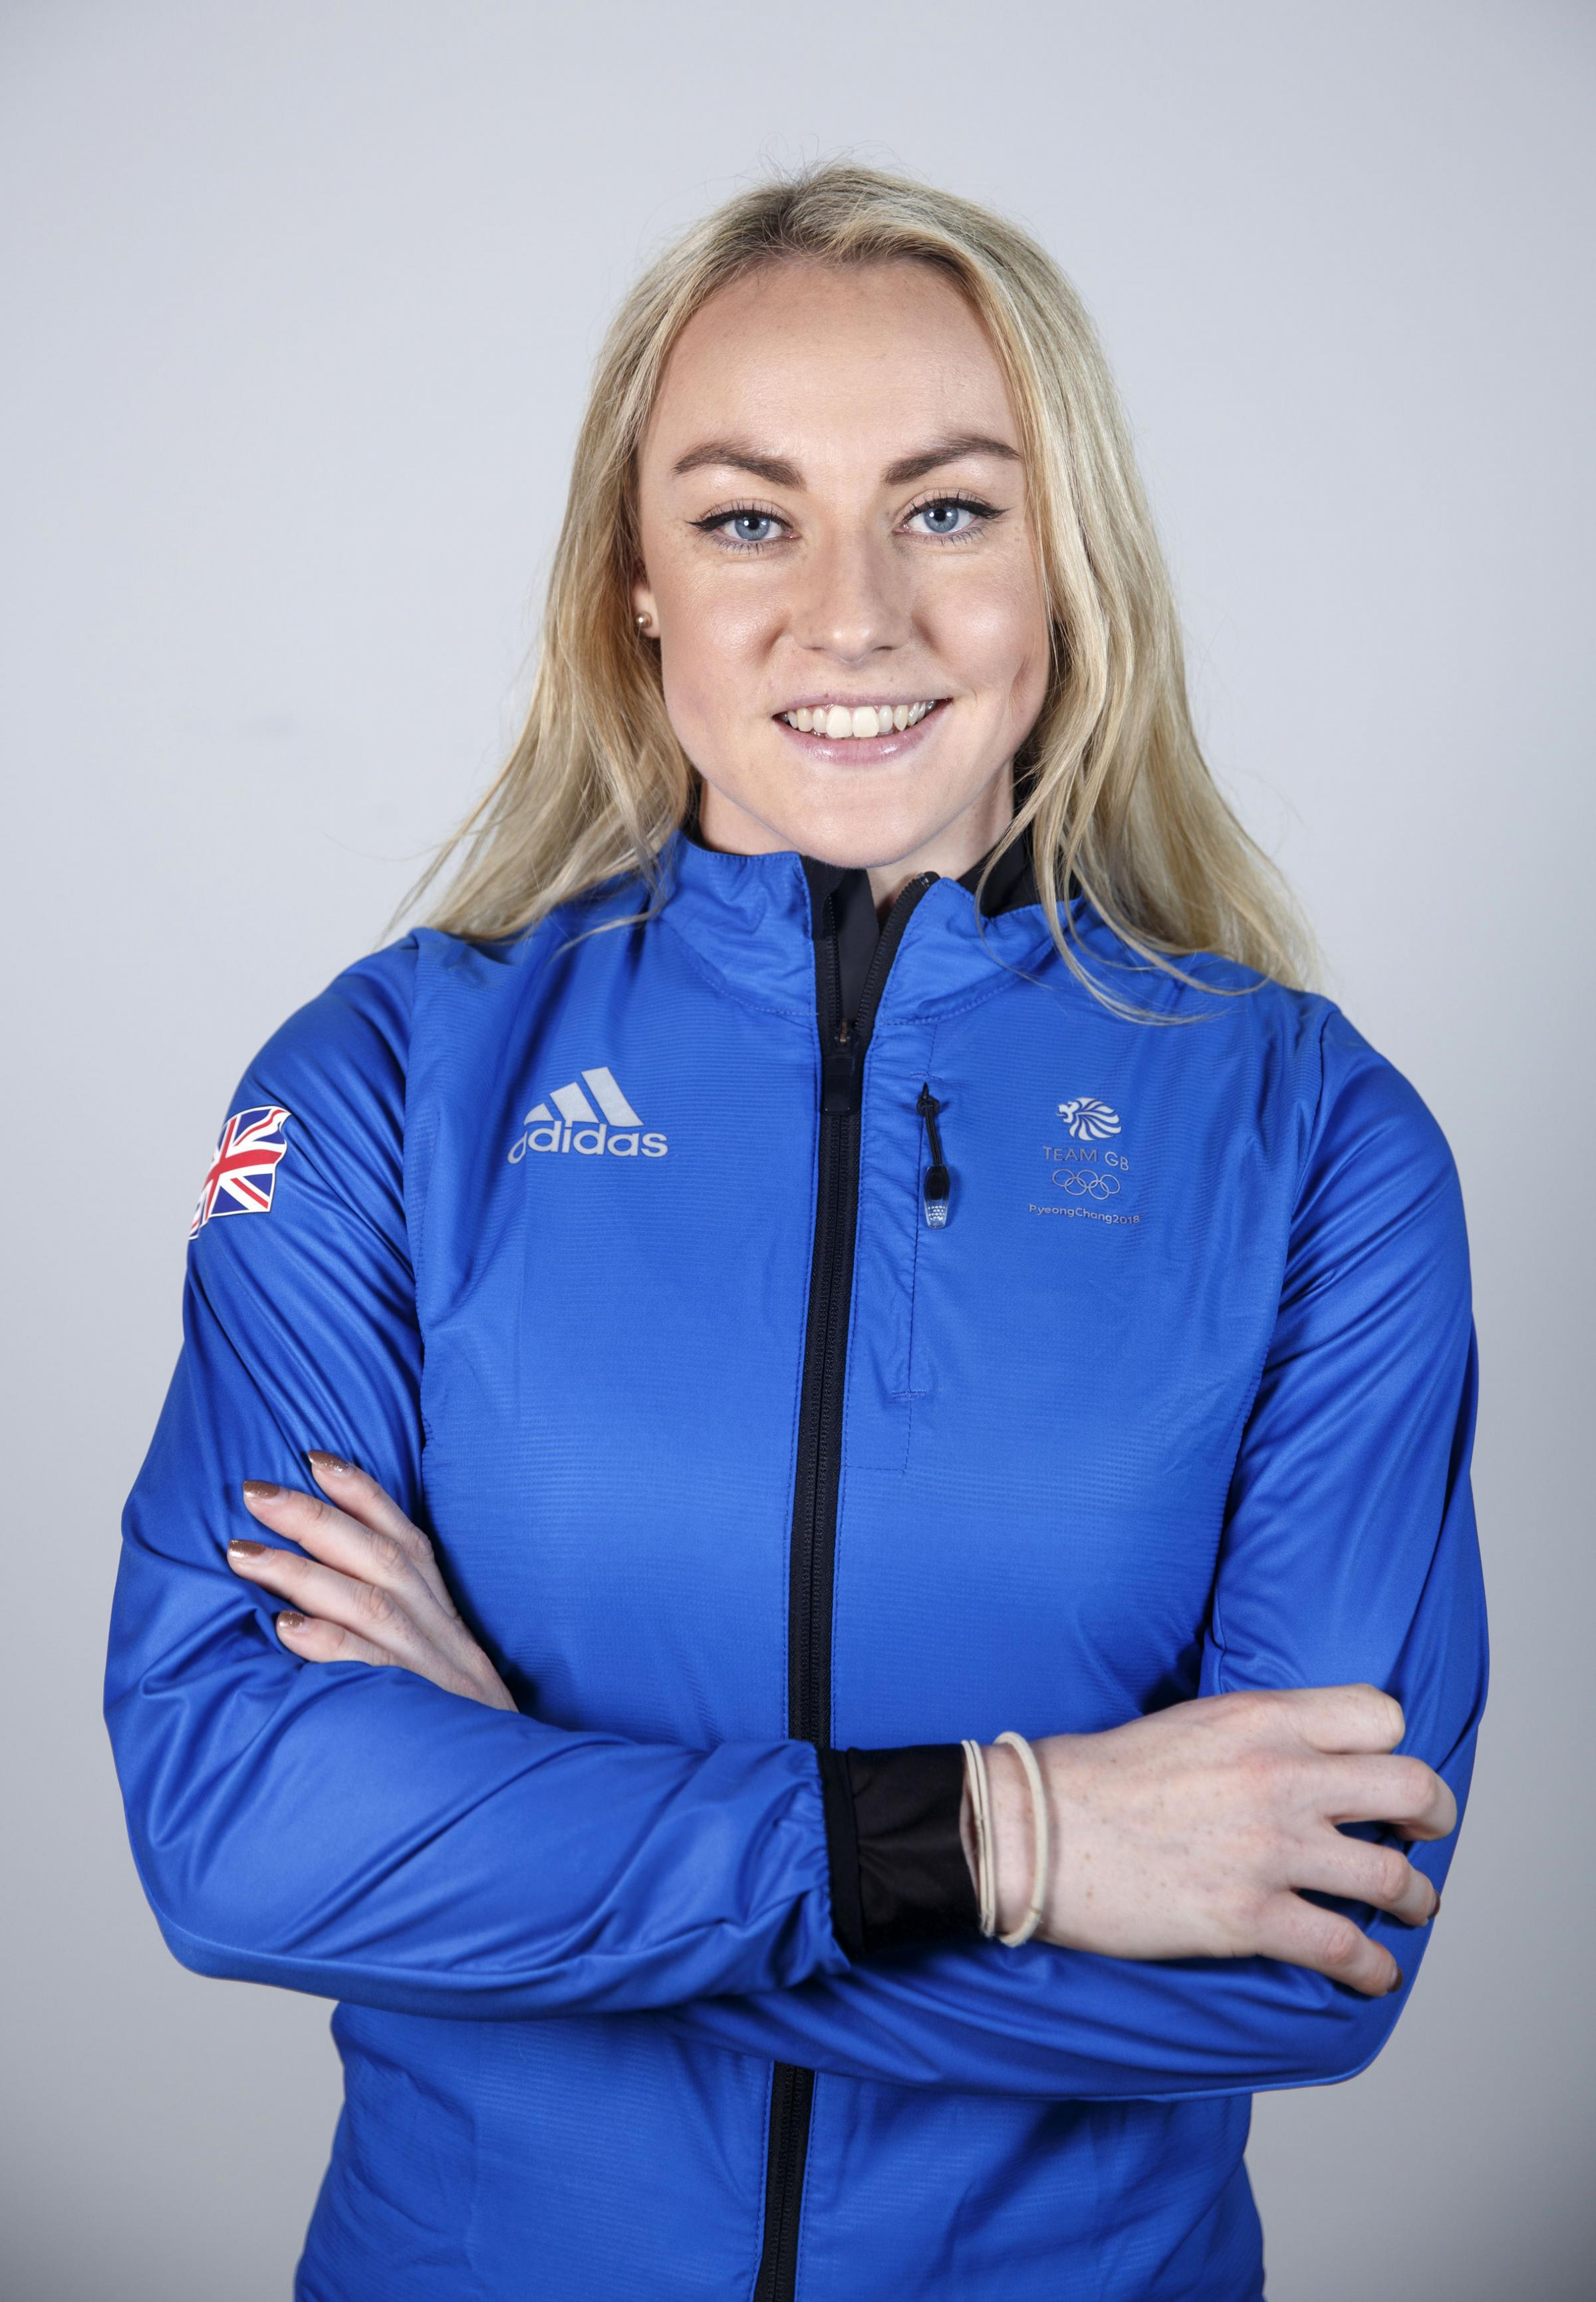 WINTER OLYMPIAN: Consett bobsleigh driver Mica McNeill (Picture: Tim Goode/PA Wire)